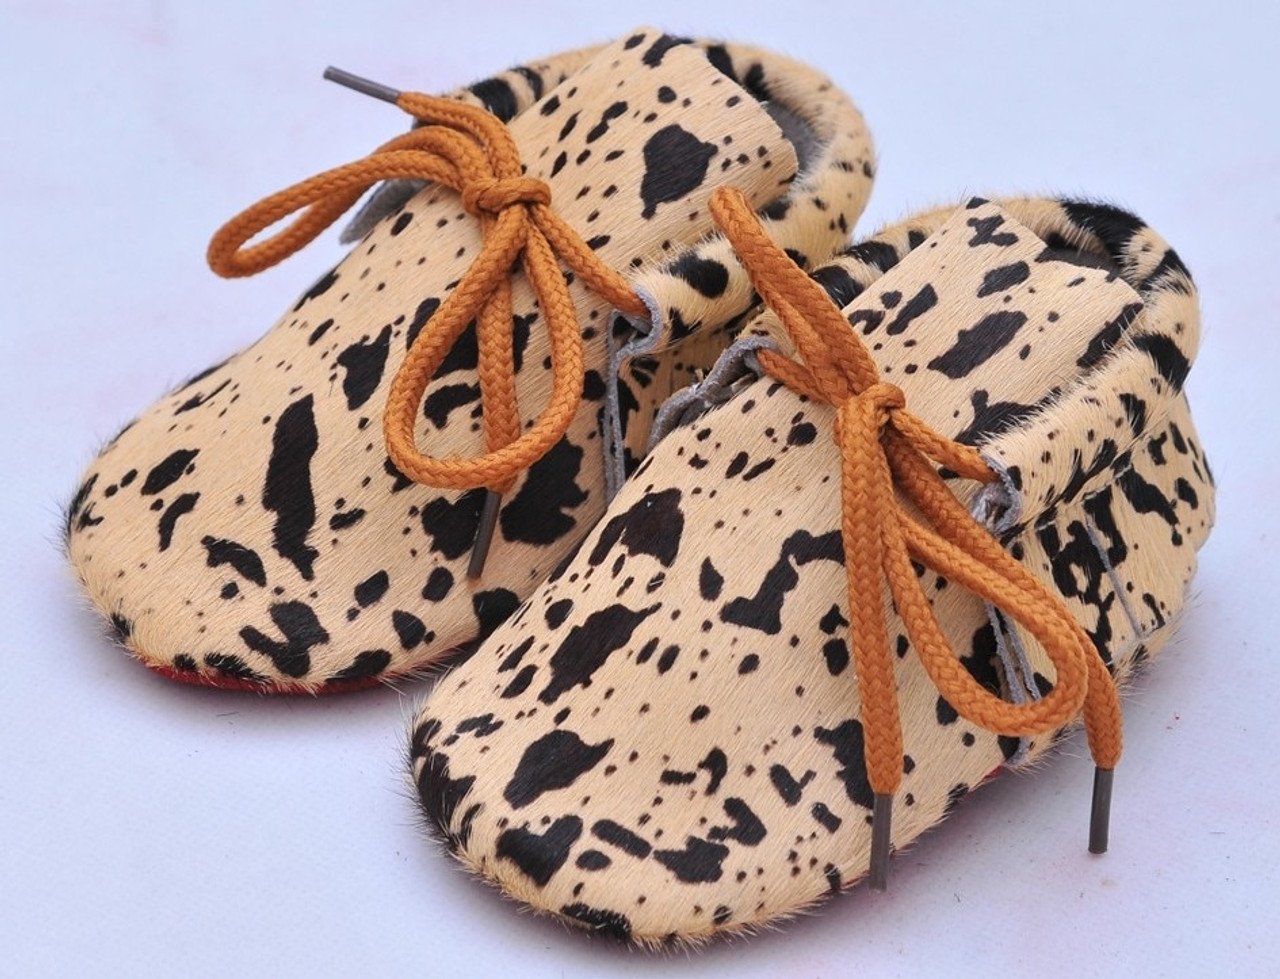 3c6291f84ad4 20colors New Genuine Leather Baby Moccasins Shoes lace up leopard red  bottom sole Baby Shoes Newborn ...